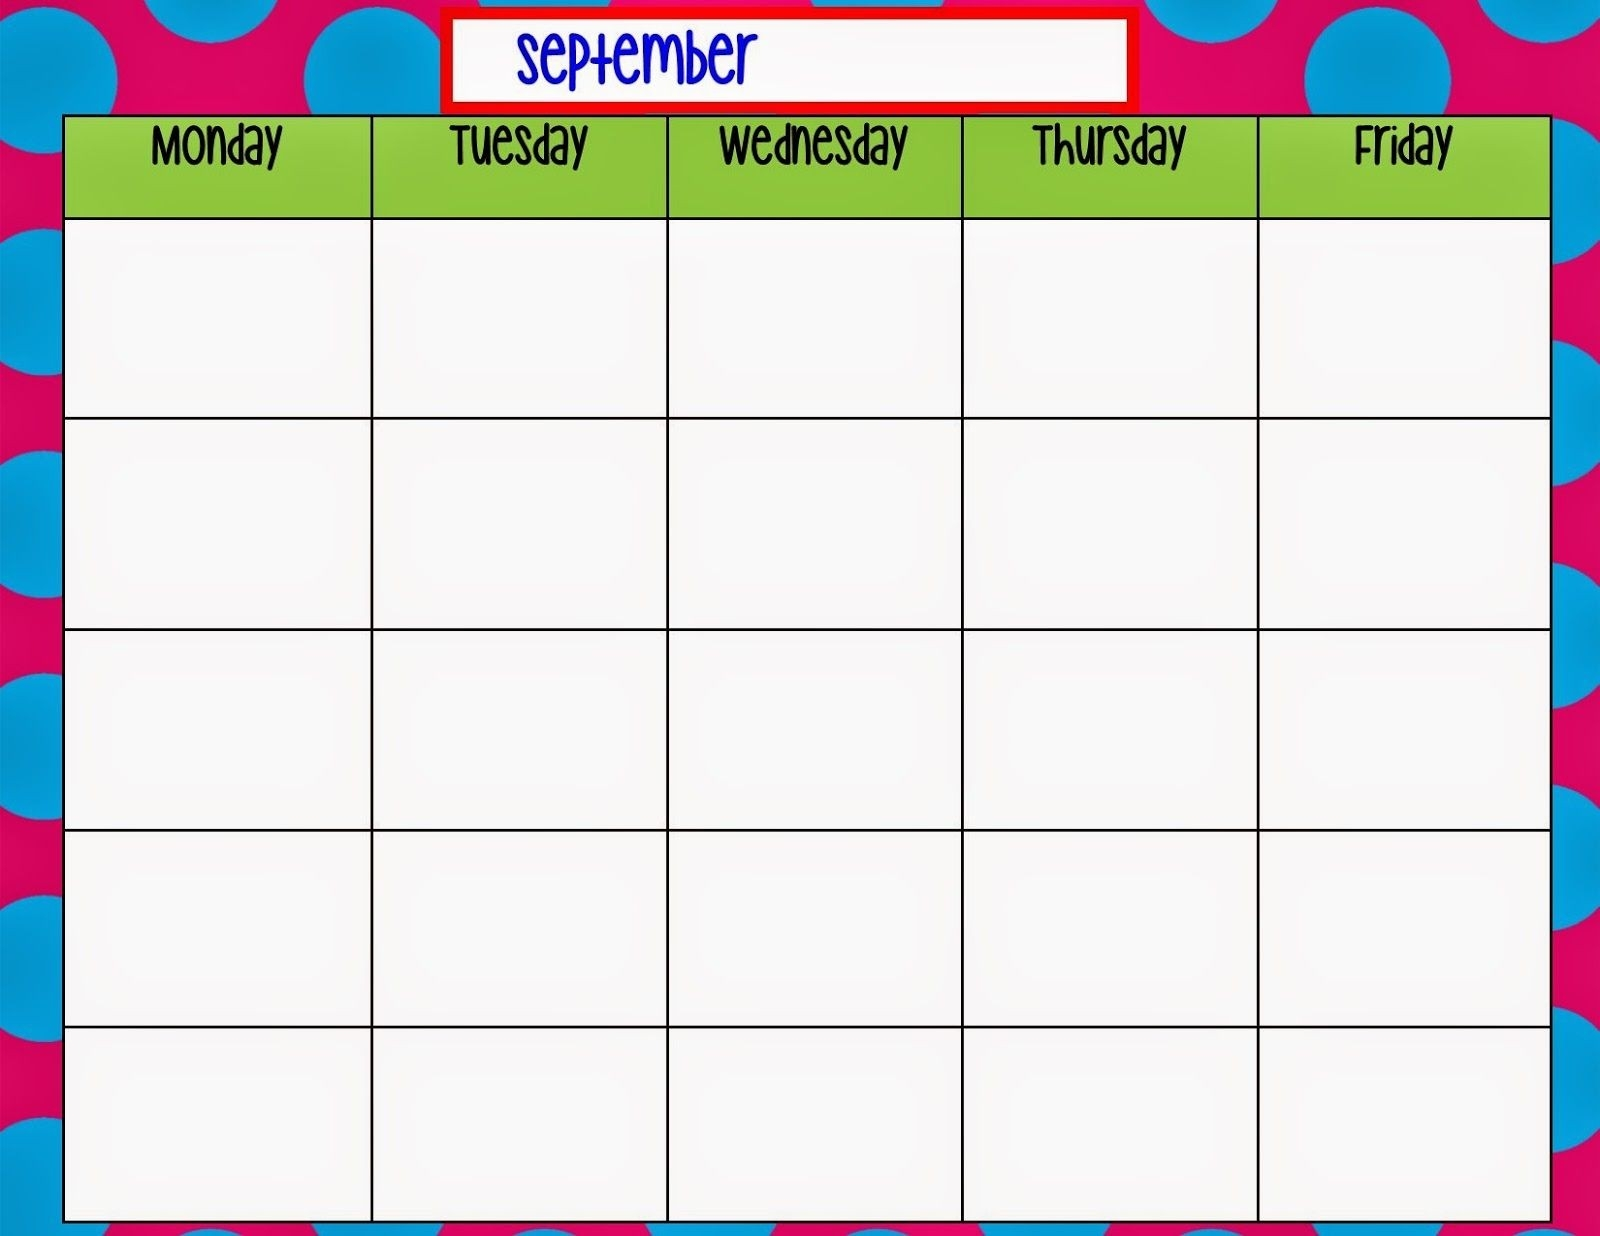 Monday Through Friday Calendar Template | Preschool | Weekly-Blank Calendar Monday To Friday